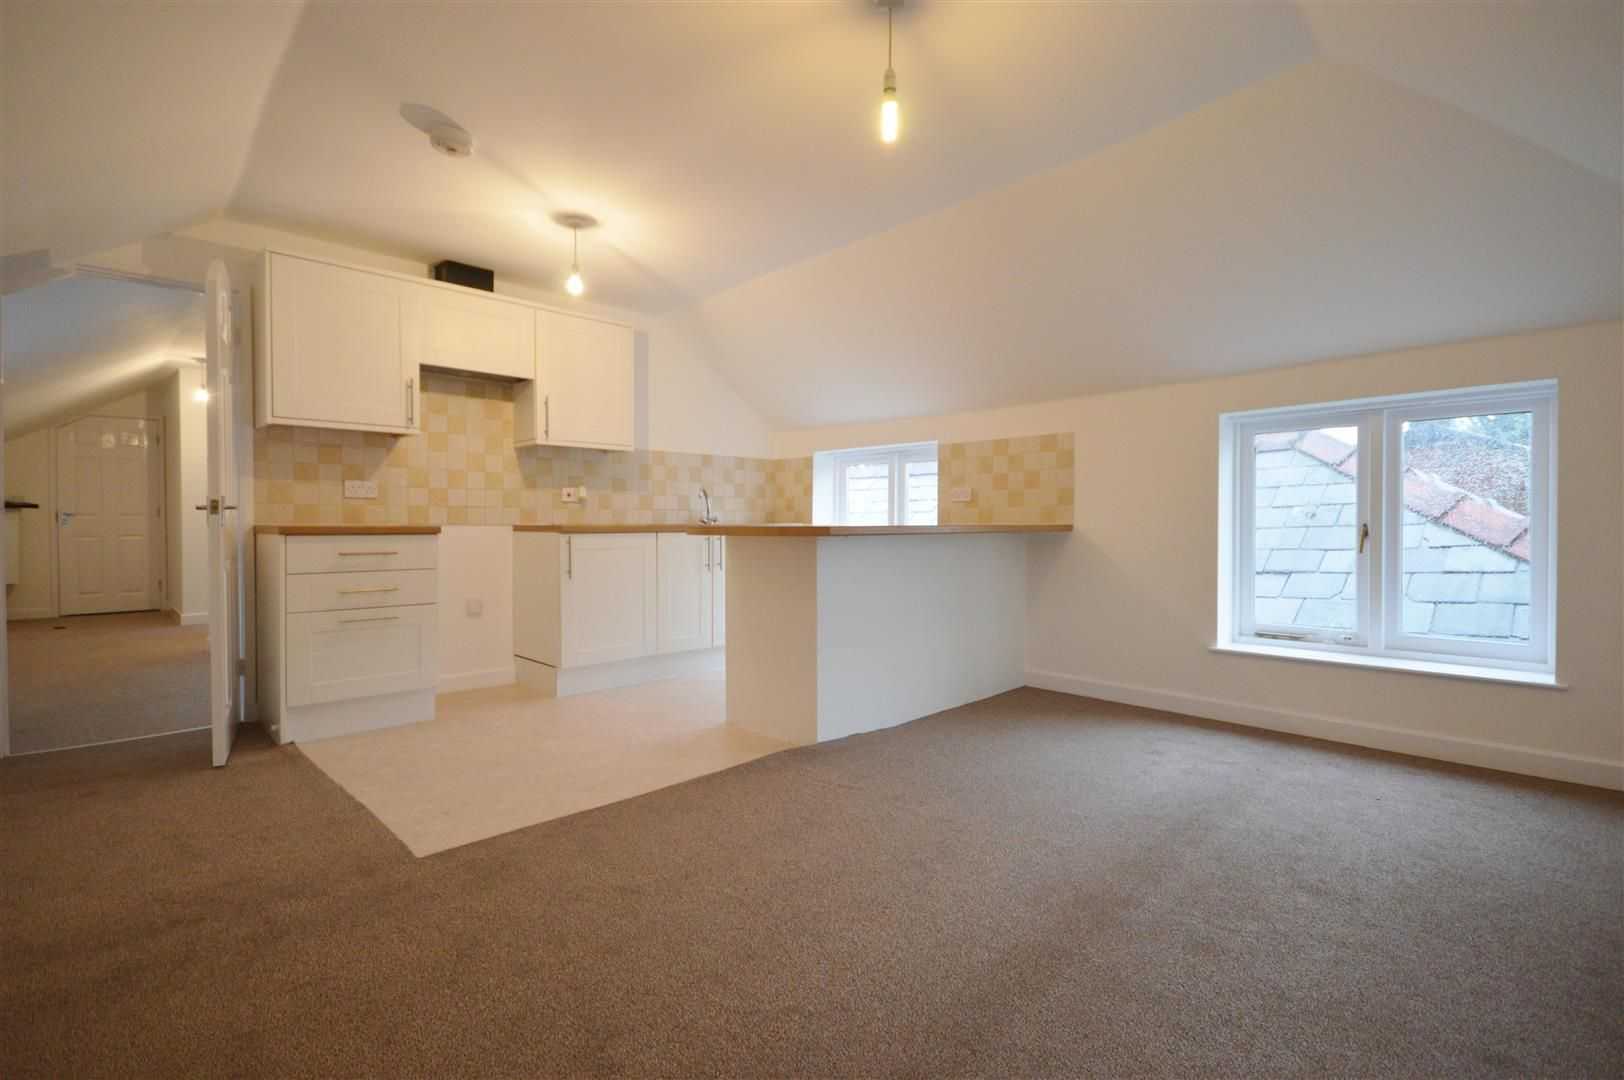 2 bed flat to rent in 4 Rainbow Street, HR6